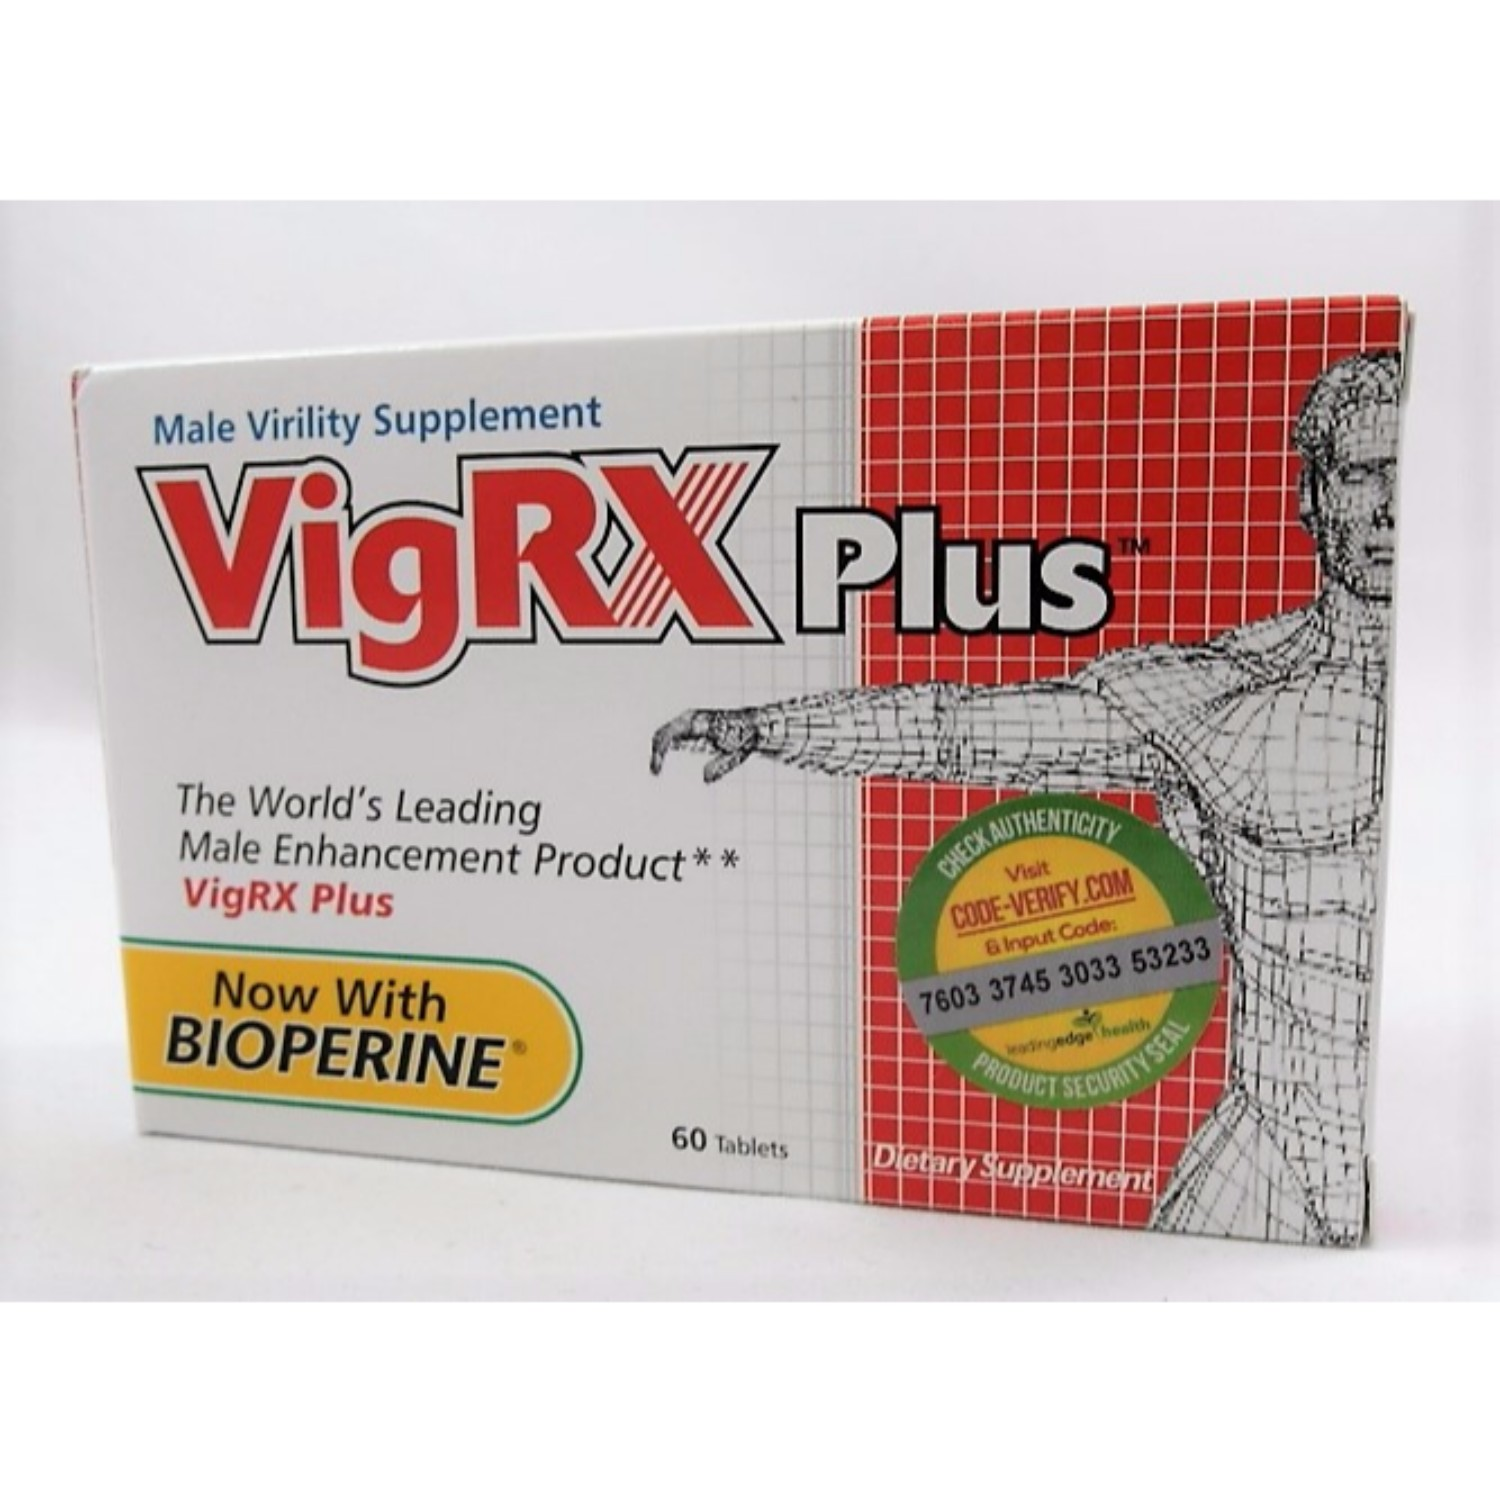 Who is the Manufacturer of VigRX Plus?